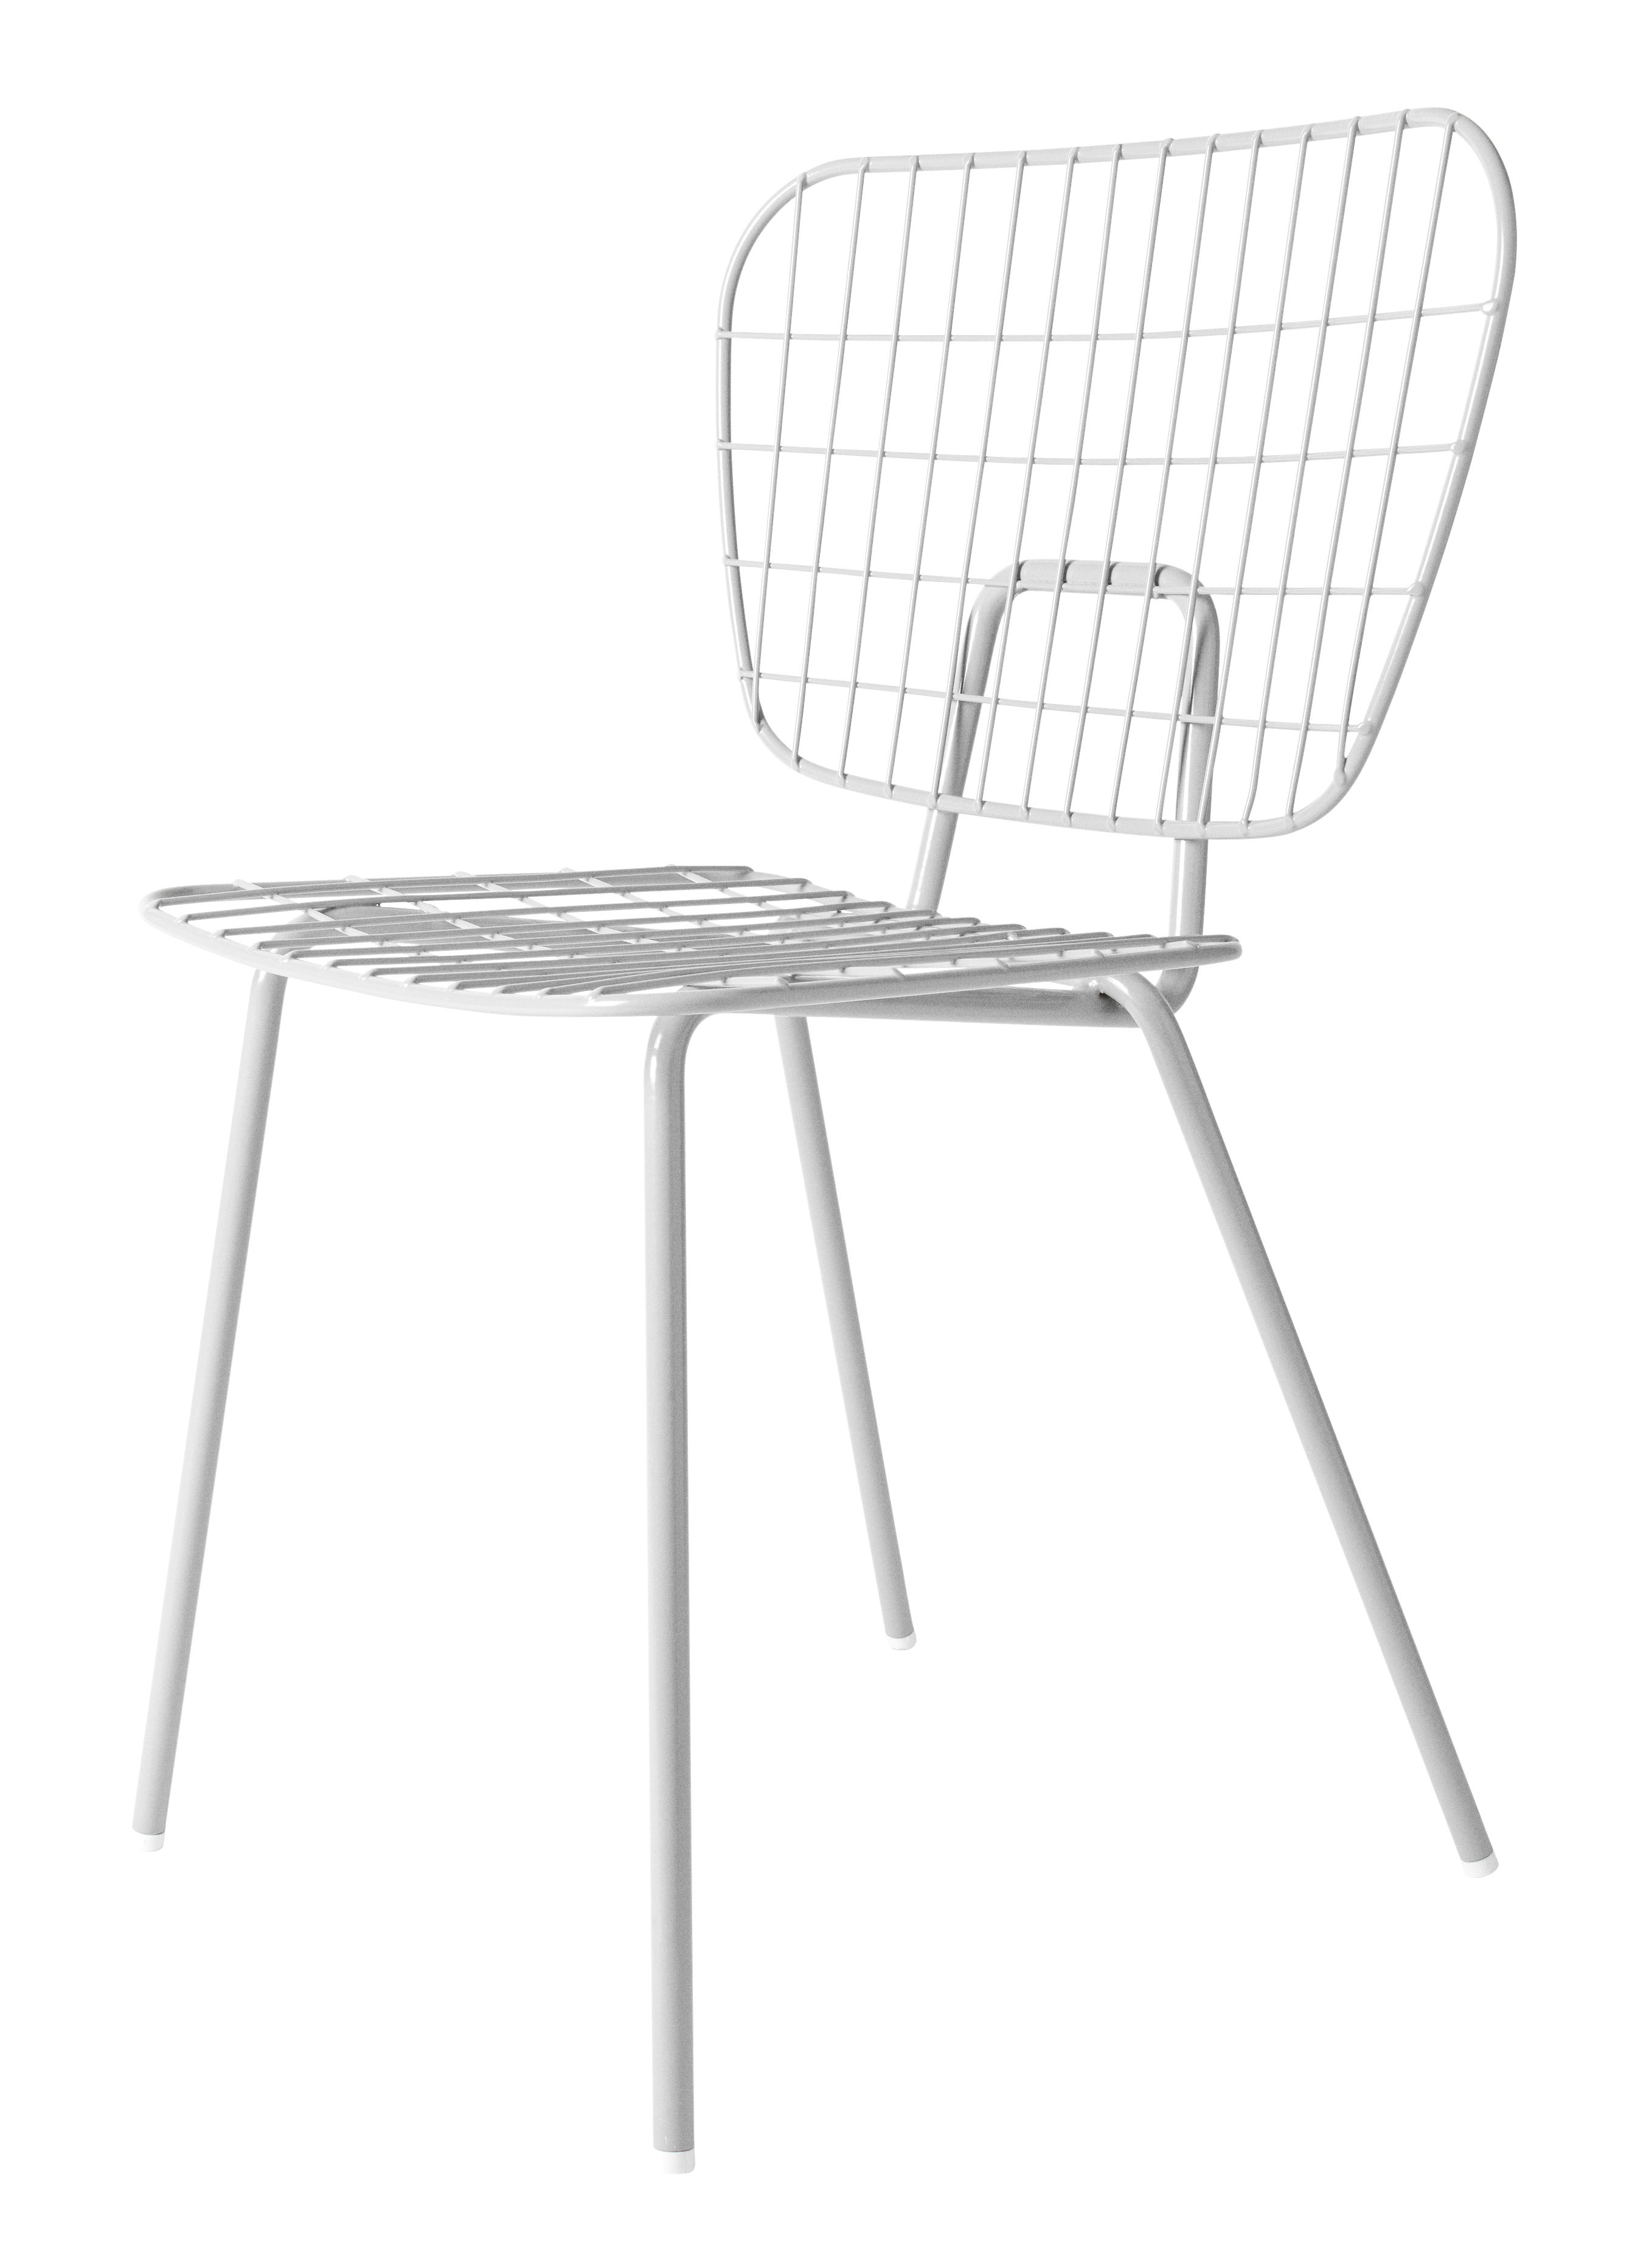 Furniture - Chairs - WM String Chair - Steel by Menu - White - Epoxy lacquered steel